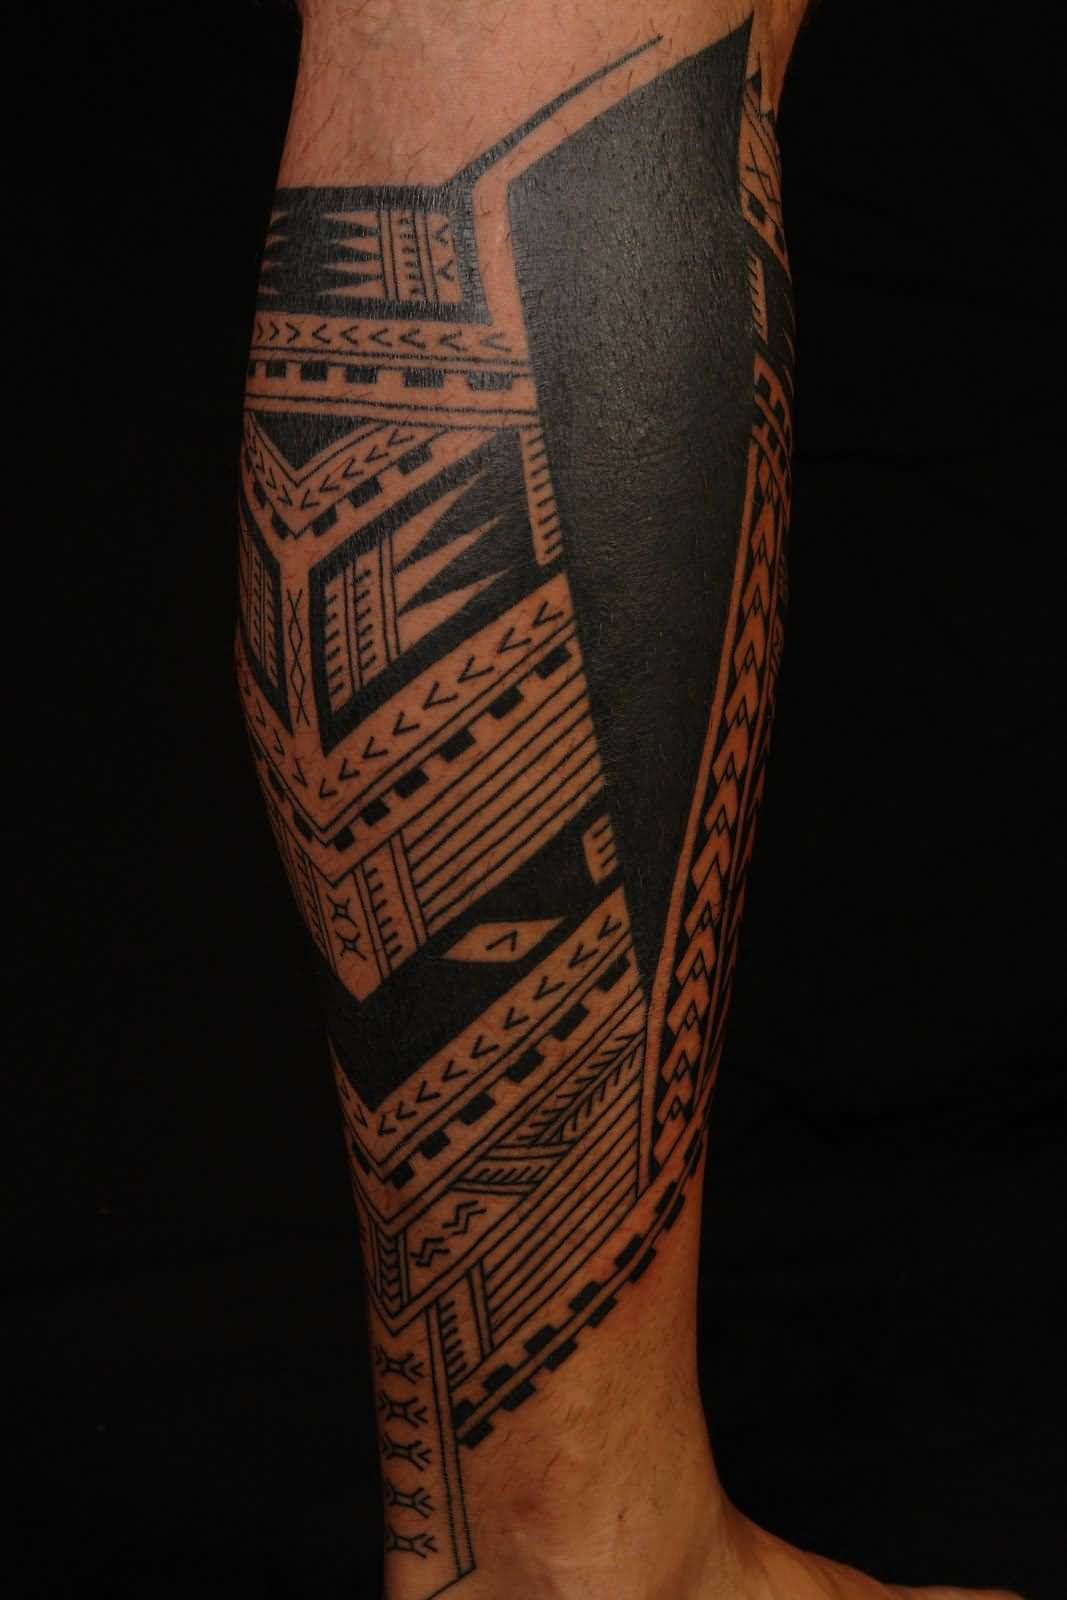 Black Ink Amazing Samoan Tattoo On Leg (2)